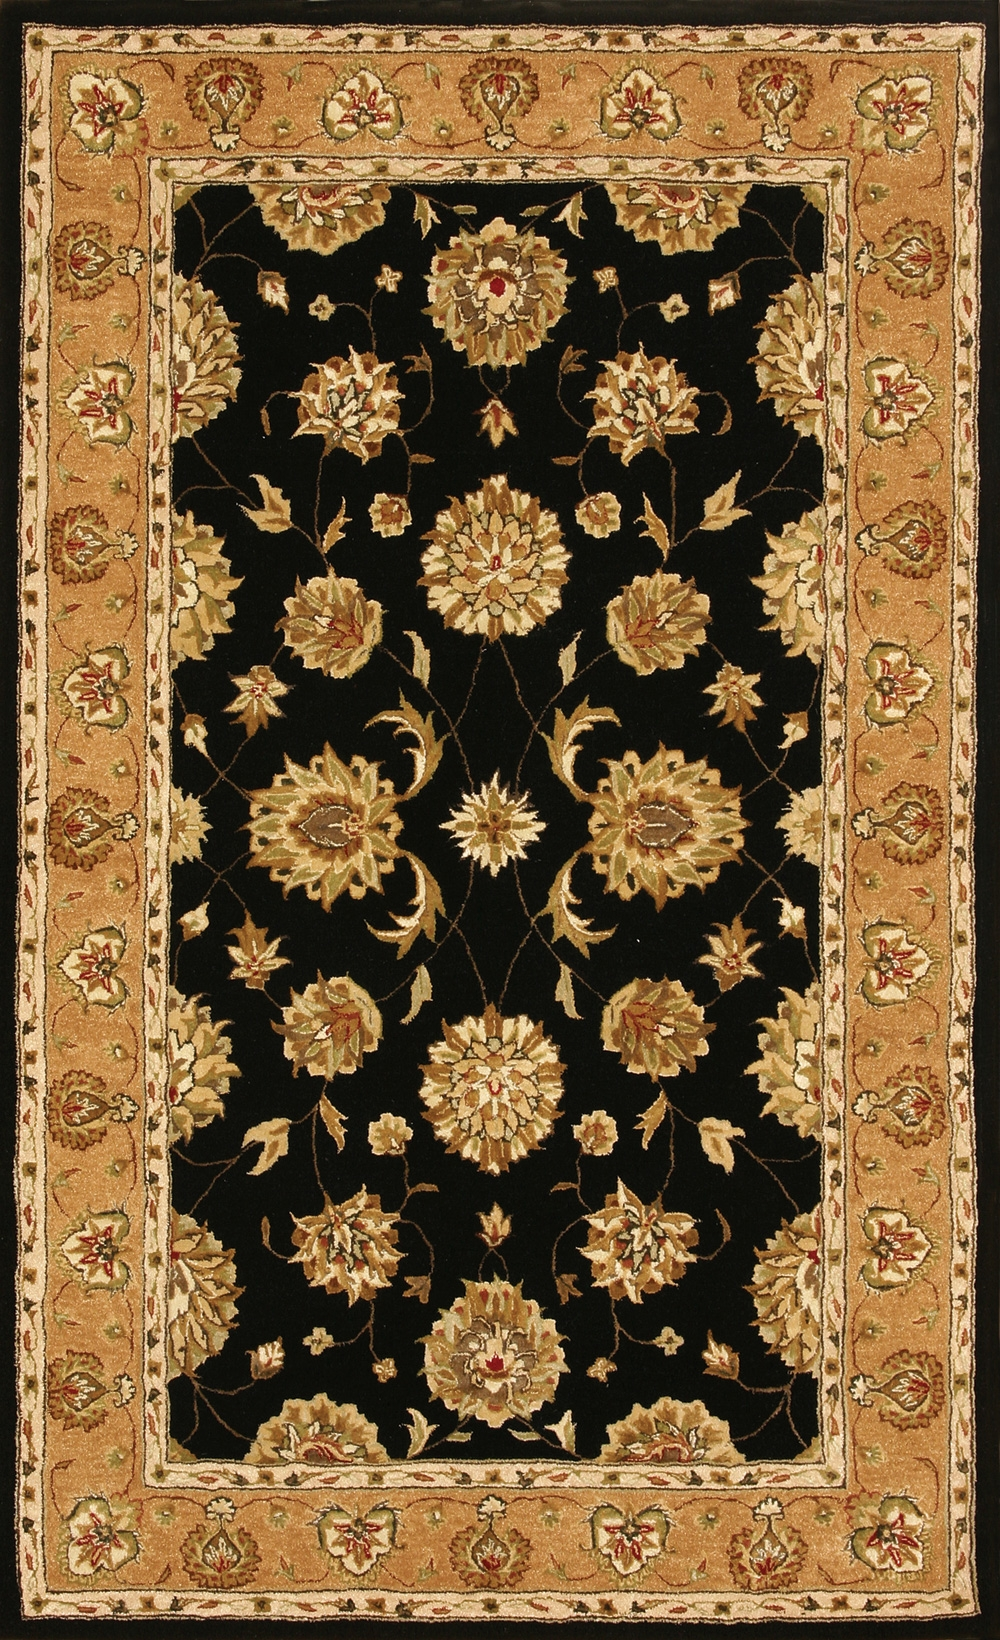 Black Camel 70230 092 Jewel Rug By Dynamic